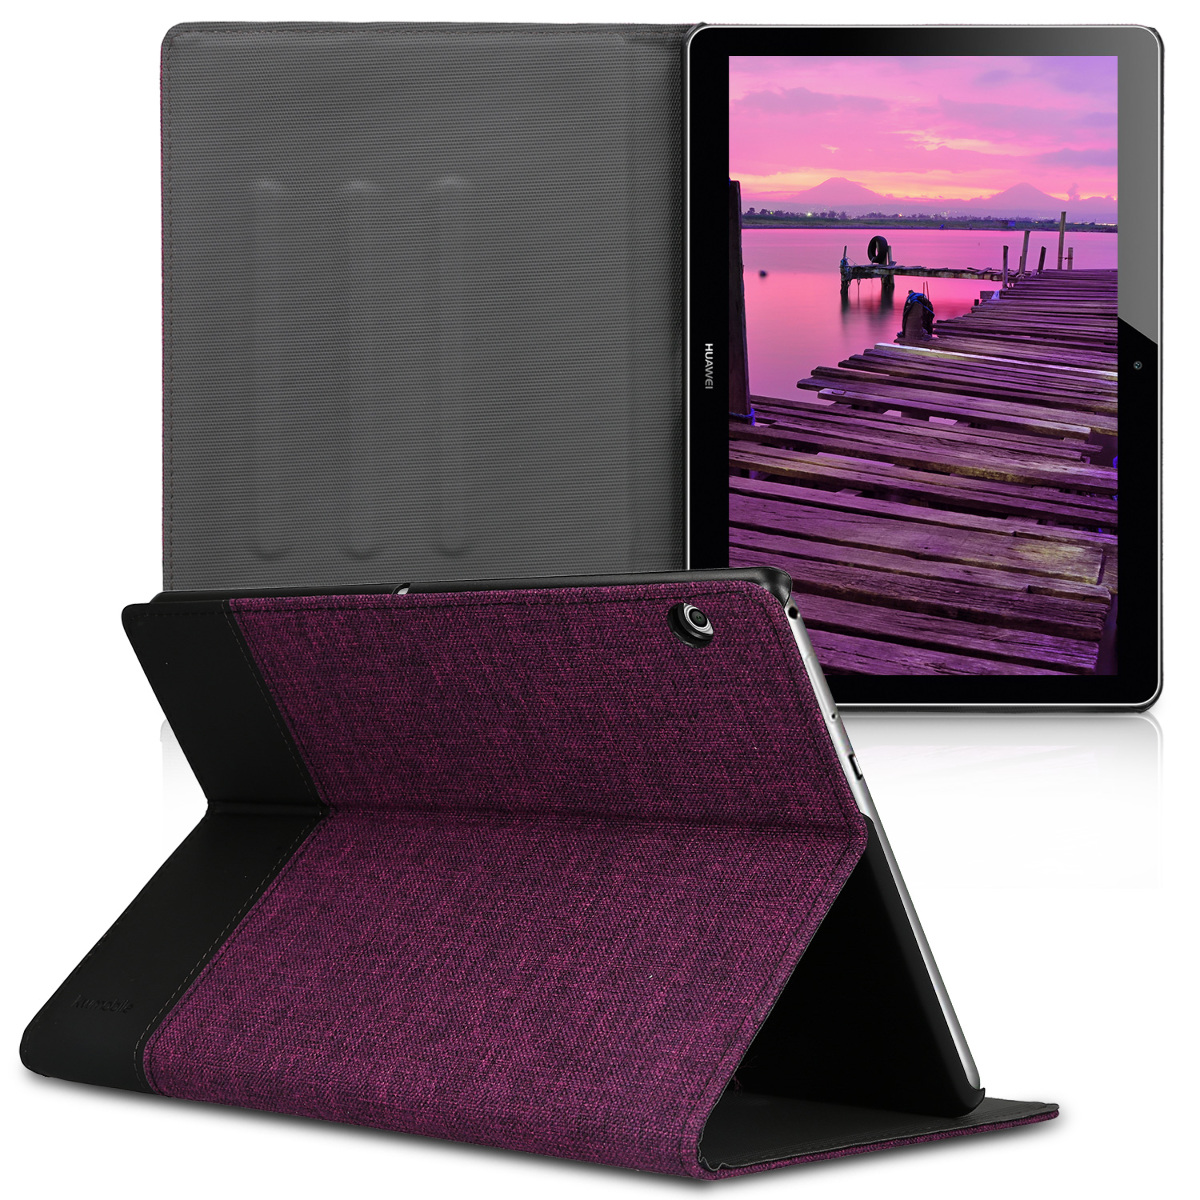 CUSTODIA-PER-HUAWEI-MEDIAPAD-T3-10-STAND-COVER-TABLET-CASE